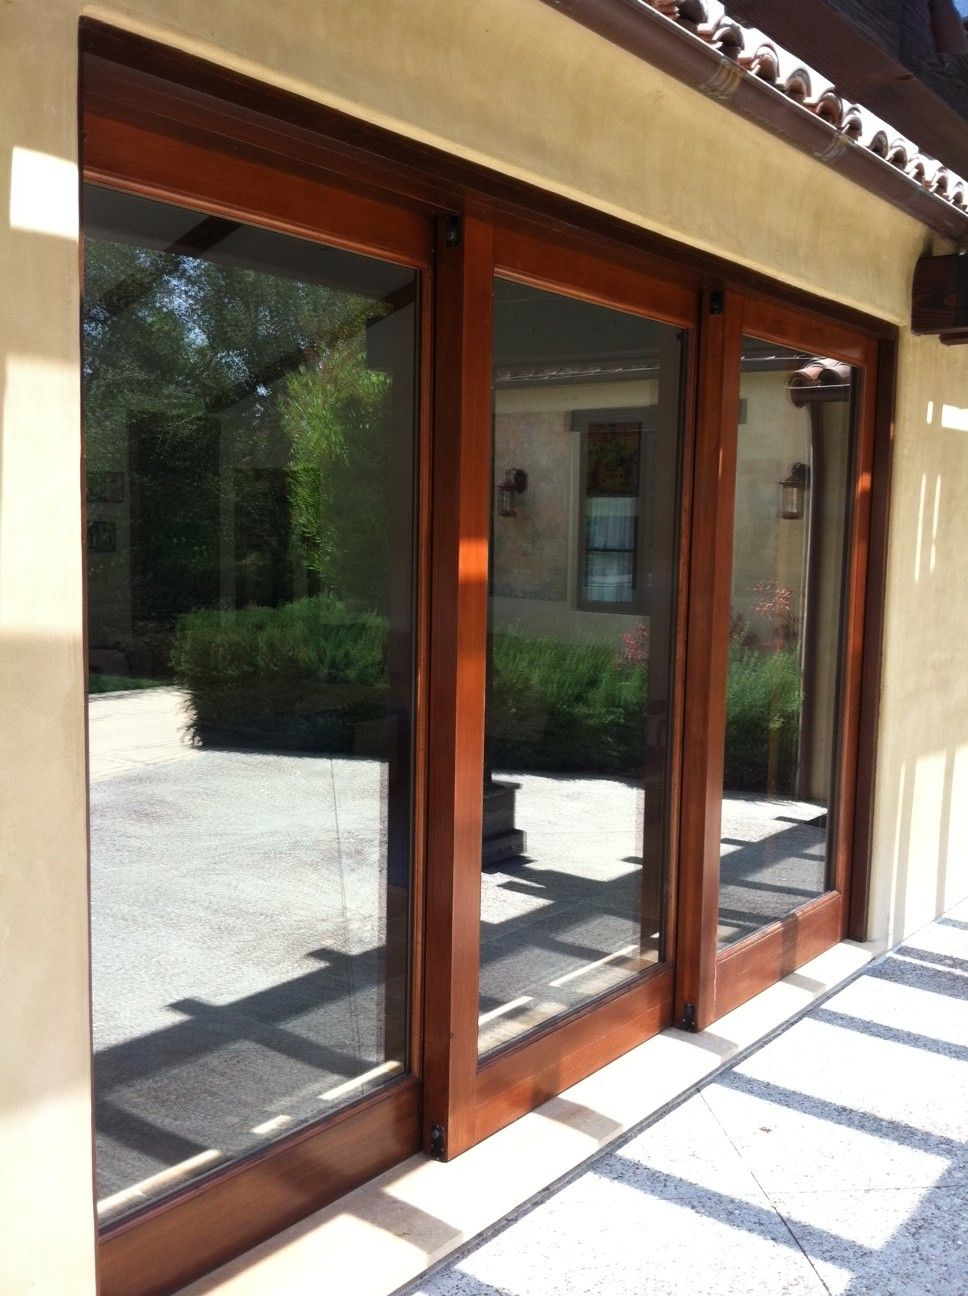 Pocket Sliding Glass Patio Doors Just a couple of months ago I